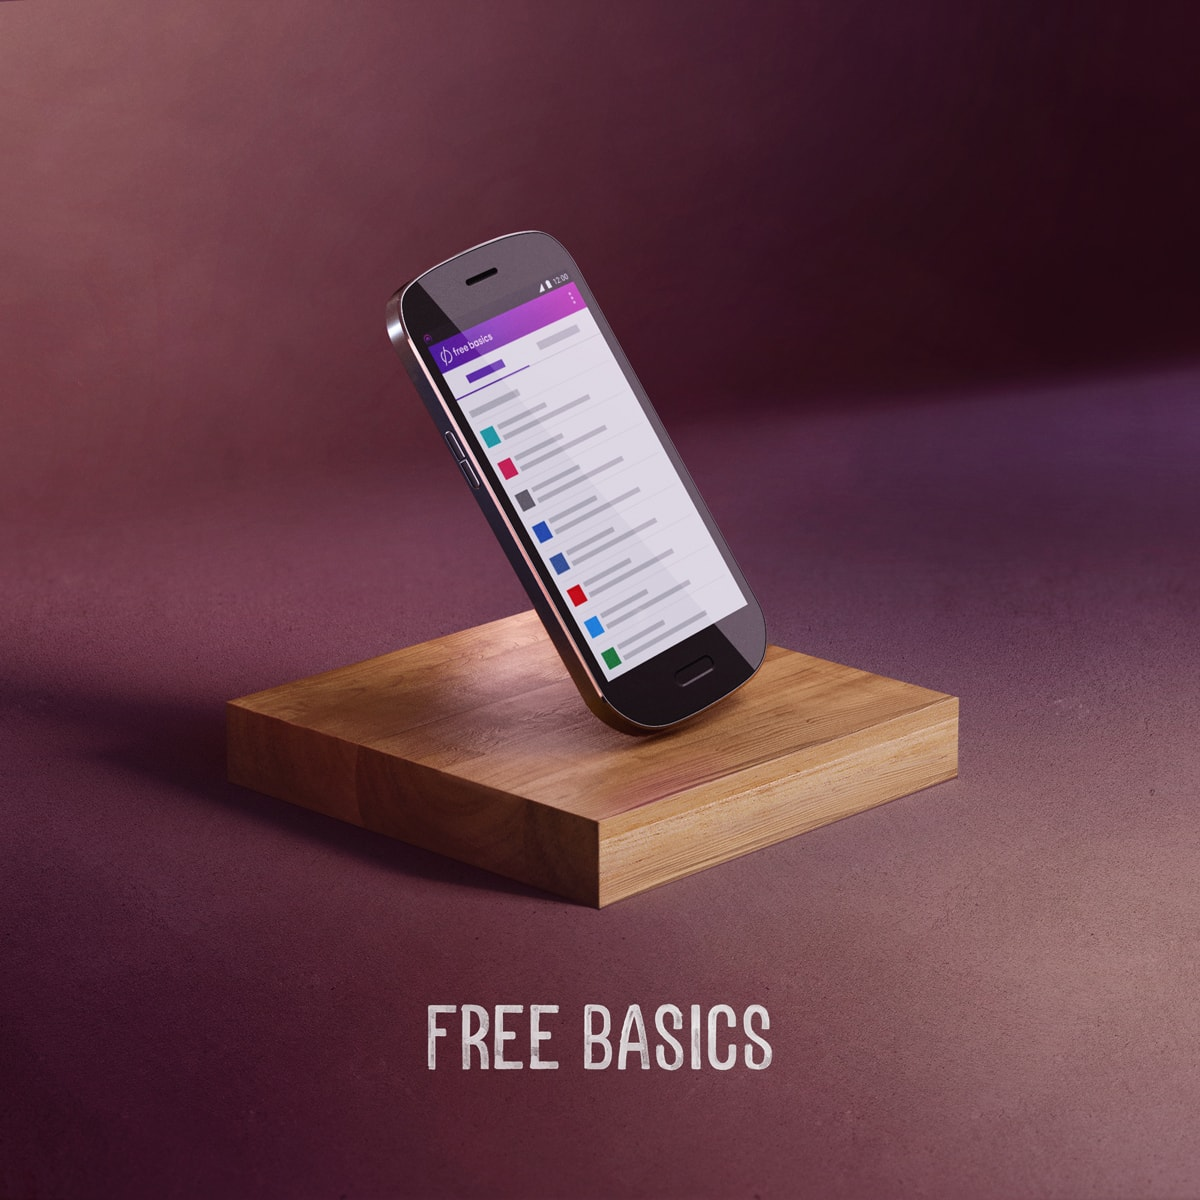 AT_int_org_i_freebasics